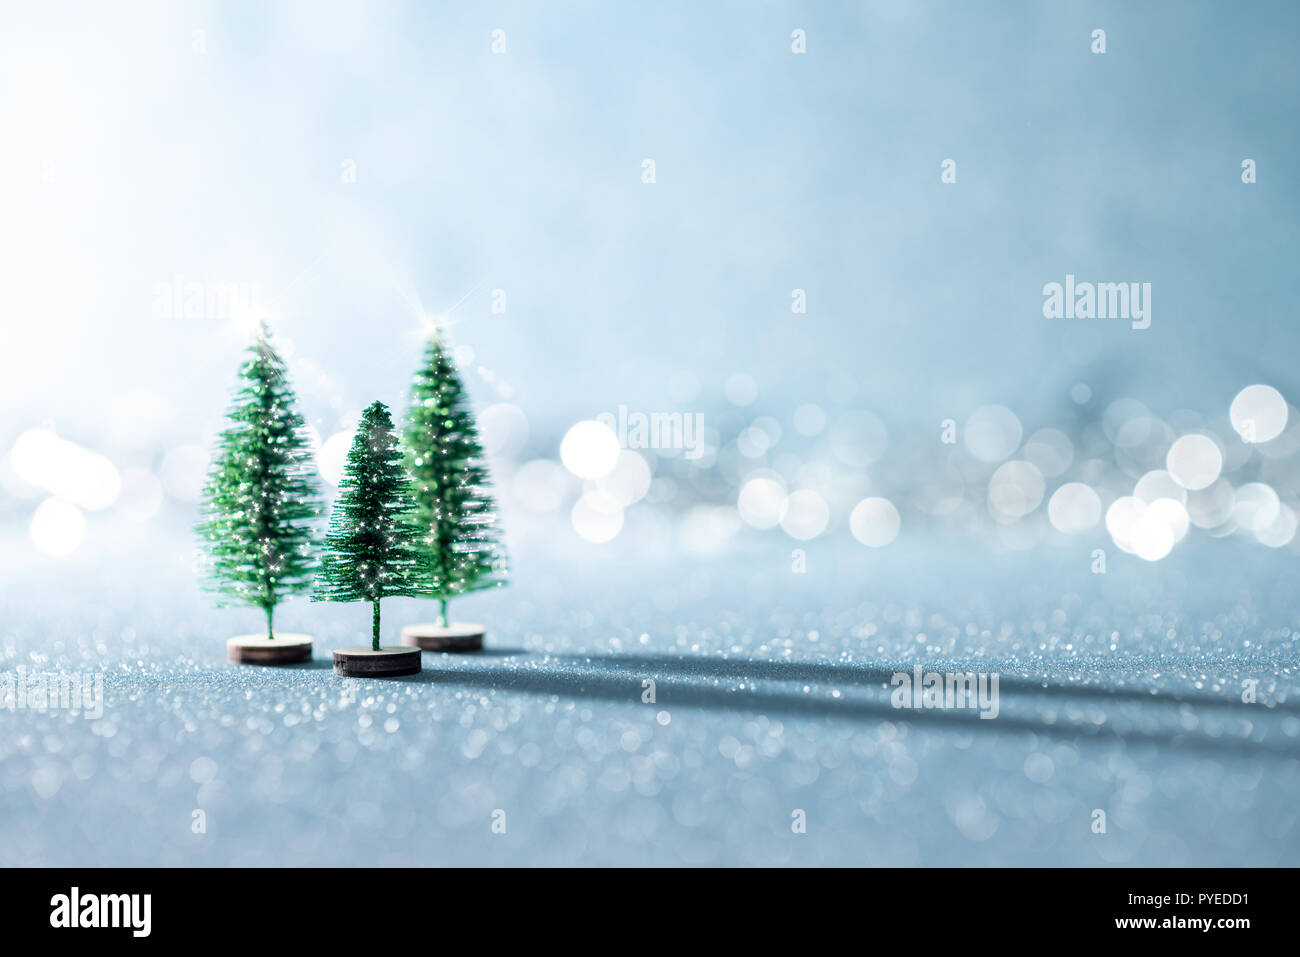 Winter Wonderland Background High Resolution Stock Photography And Images Alamy